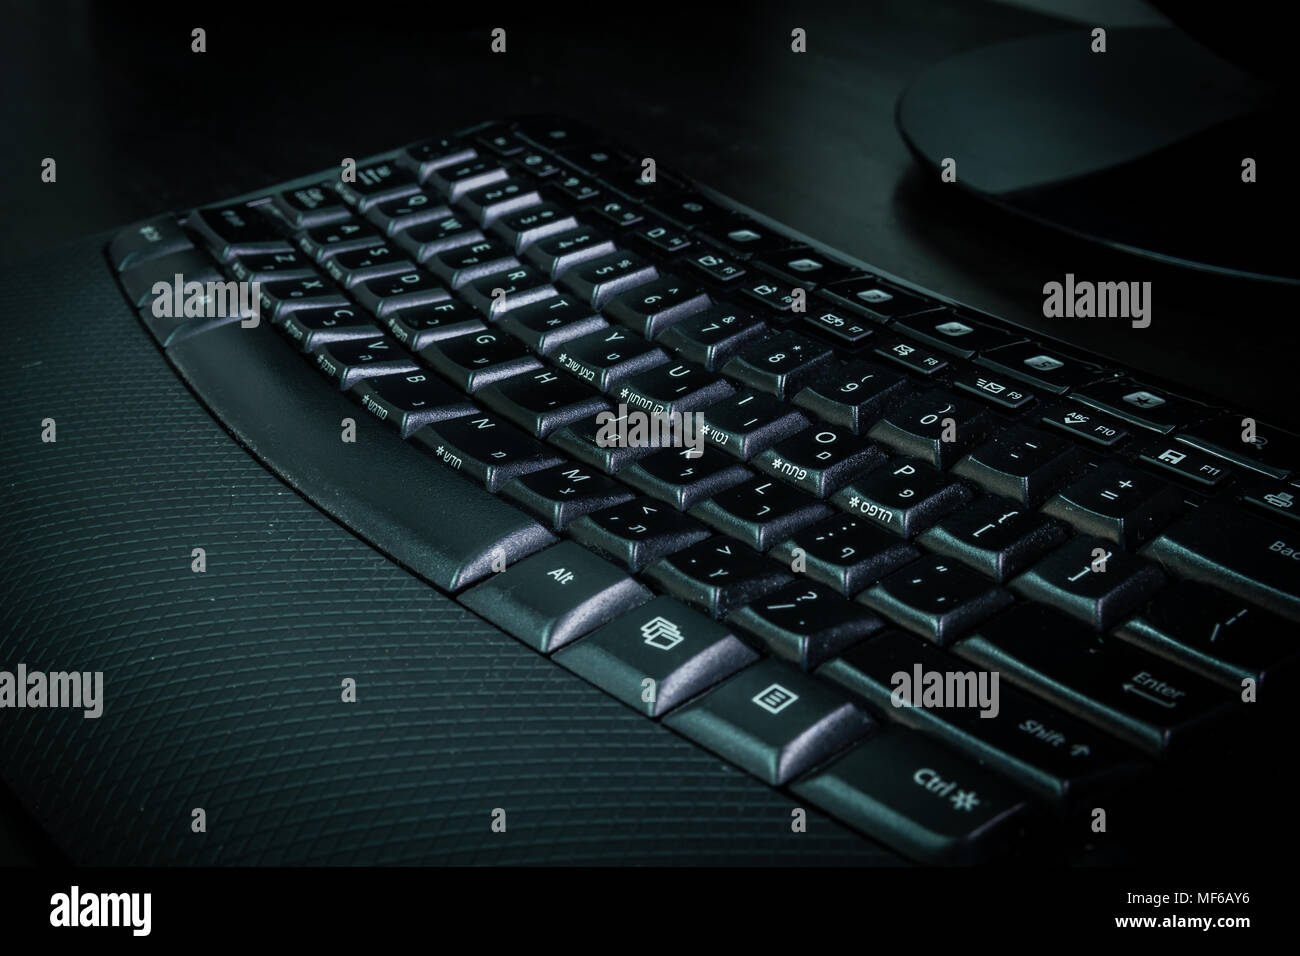 Keyboard with letters in Hebrew and English - Wireless keyboard - Dark atmosphere - Stock Image